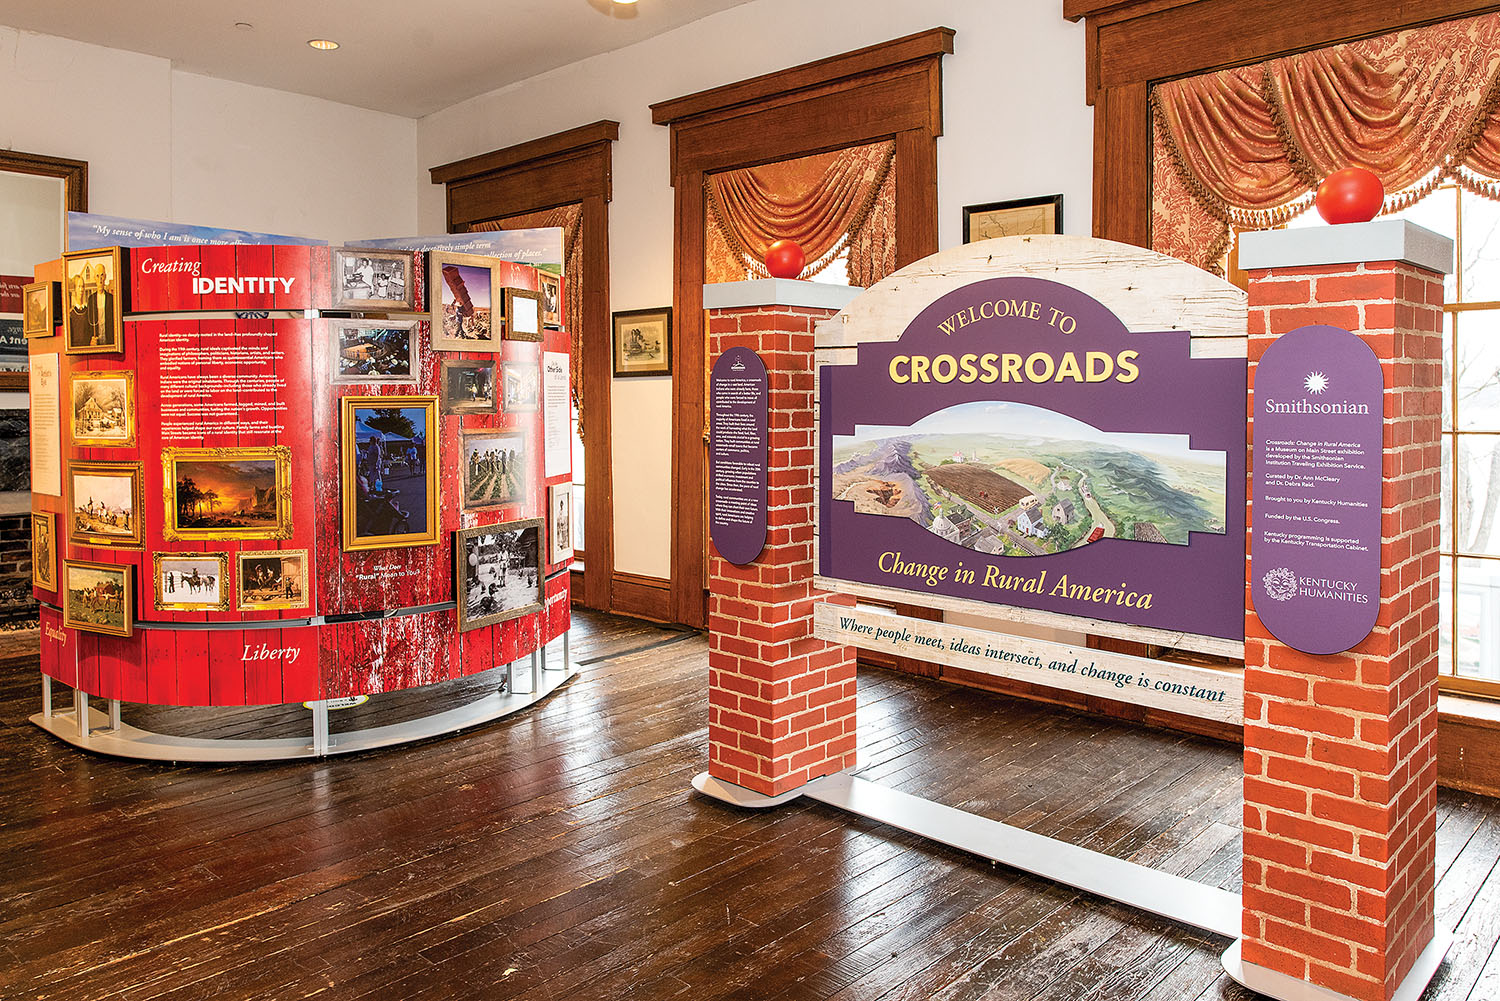 """""""Crossroads: Change in Rural America"""" chronicles the evolving rural landscape of the country. The exhibit is a traveling exhibit curated by the Smithsonian Institution and is currently visiting the River Discovery Center in Paducah, Ky. (Photo courtesy of River Discovery Center)"""